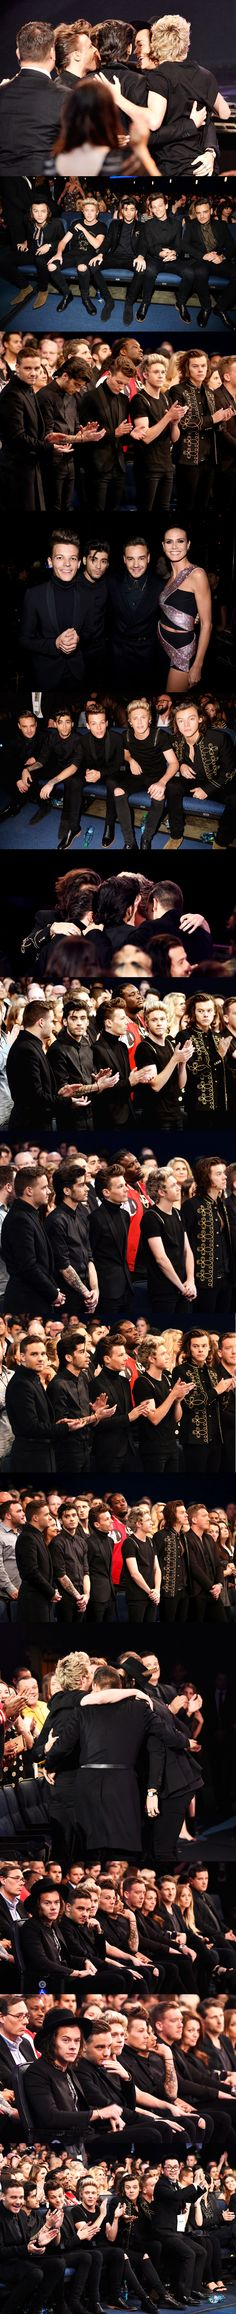 God bless you! Congratulations boys! You swept away the AMA's! The night was yours'. ❤